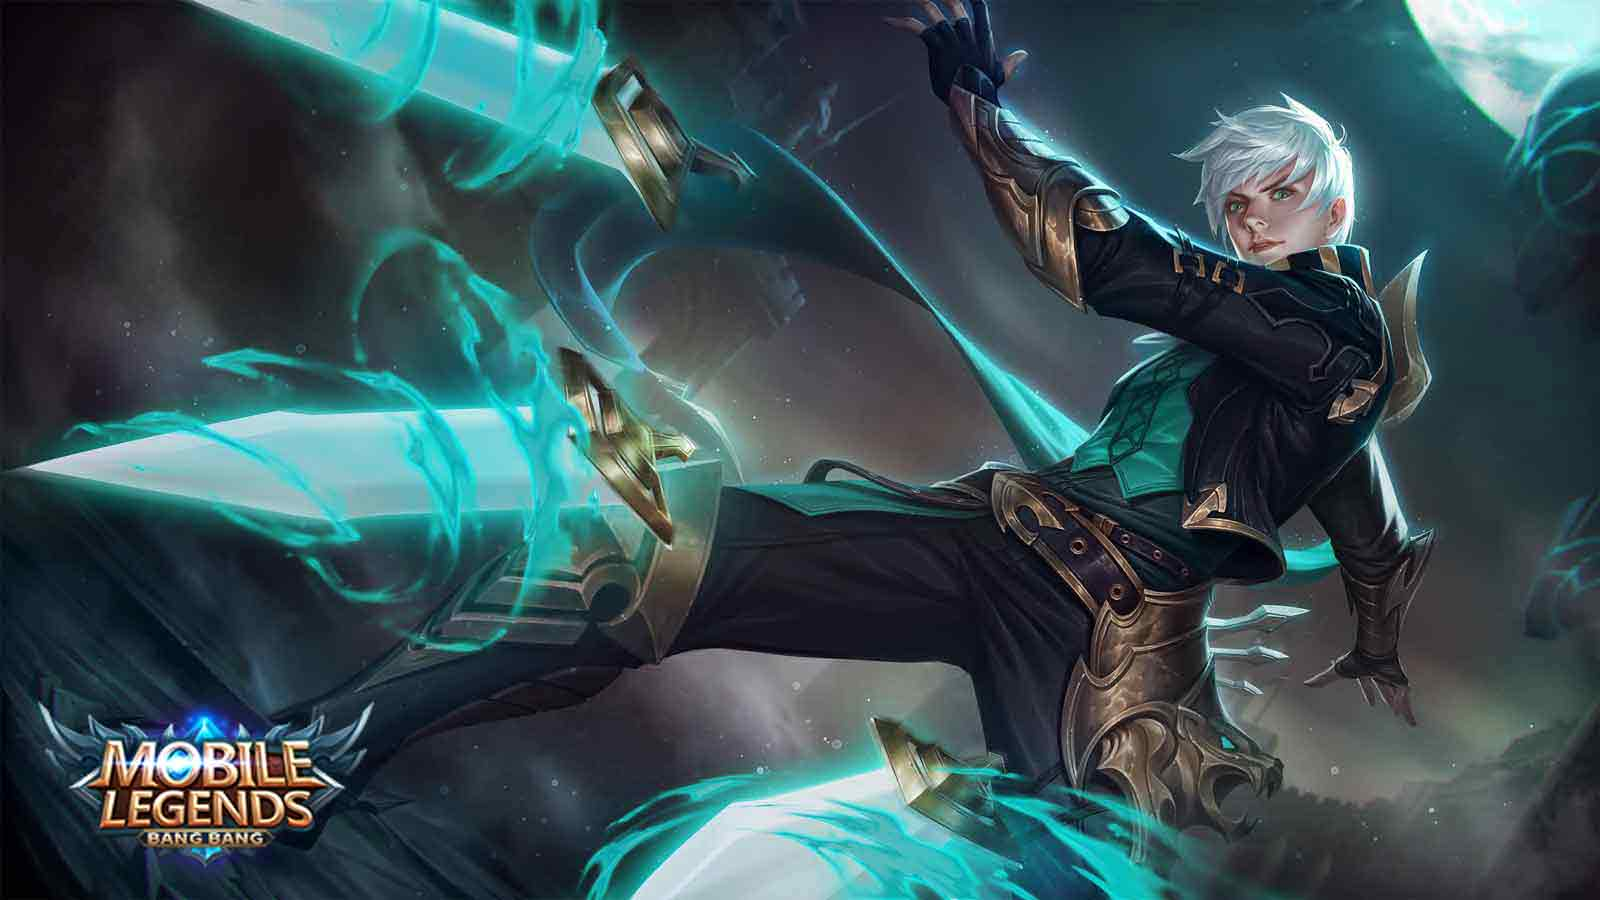 Mobile Legends Wallpapers   Skin Gusion Mobile Legend 1688384 1600x900